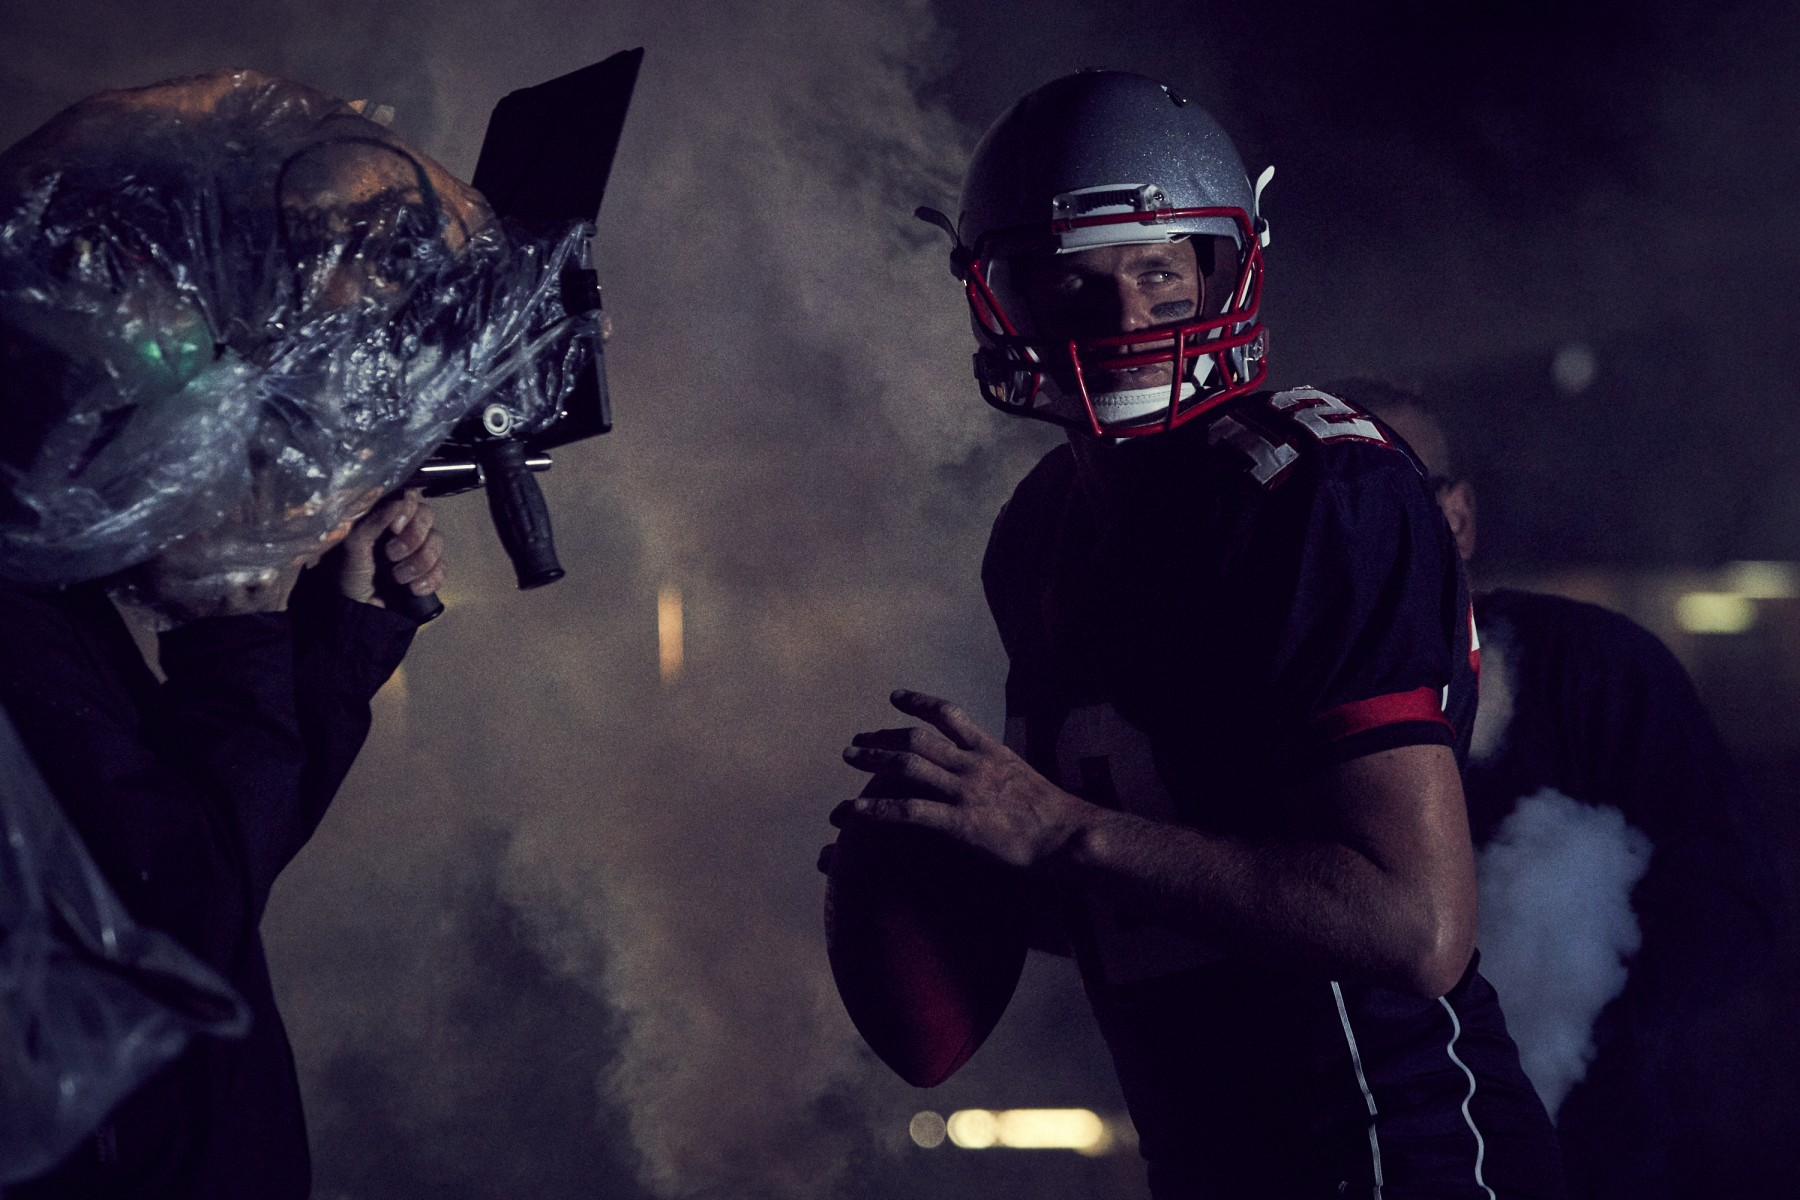 IWC_Born of a Dream_Behind The Scenes_Tom Brady